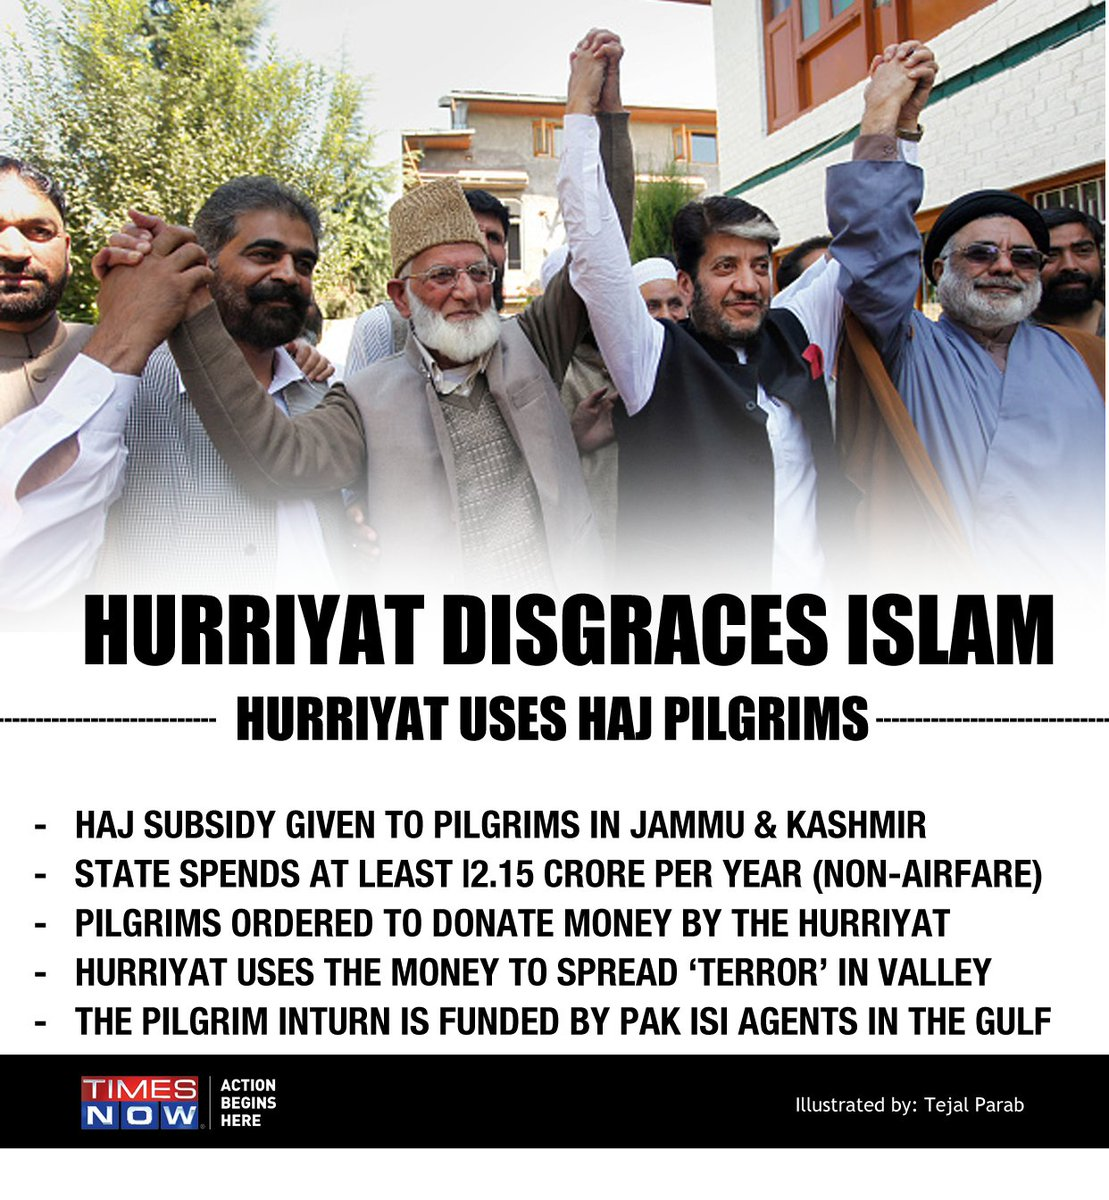 #HurriyatHijacksHajSubsidy Hurriyat Conference uses Haj pilgrims in Kashmir to access terror funds